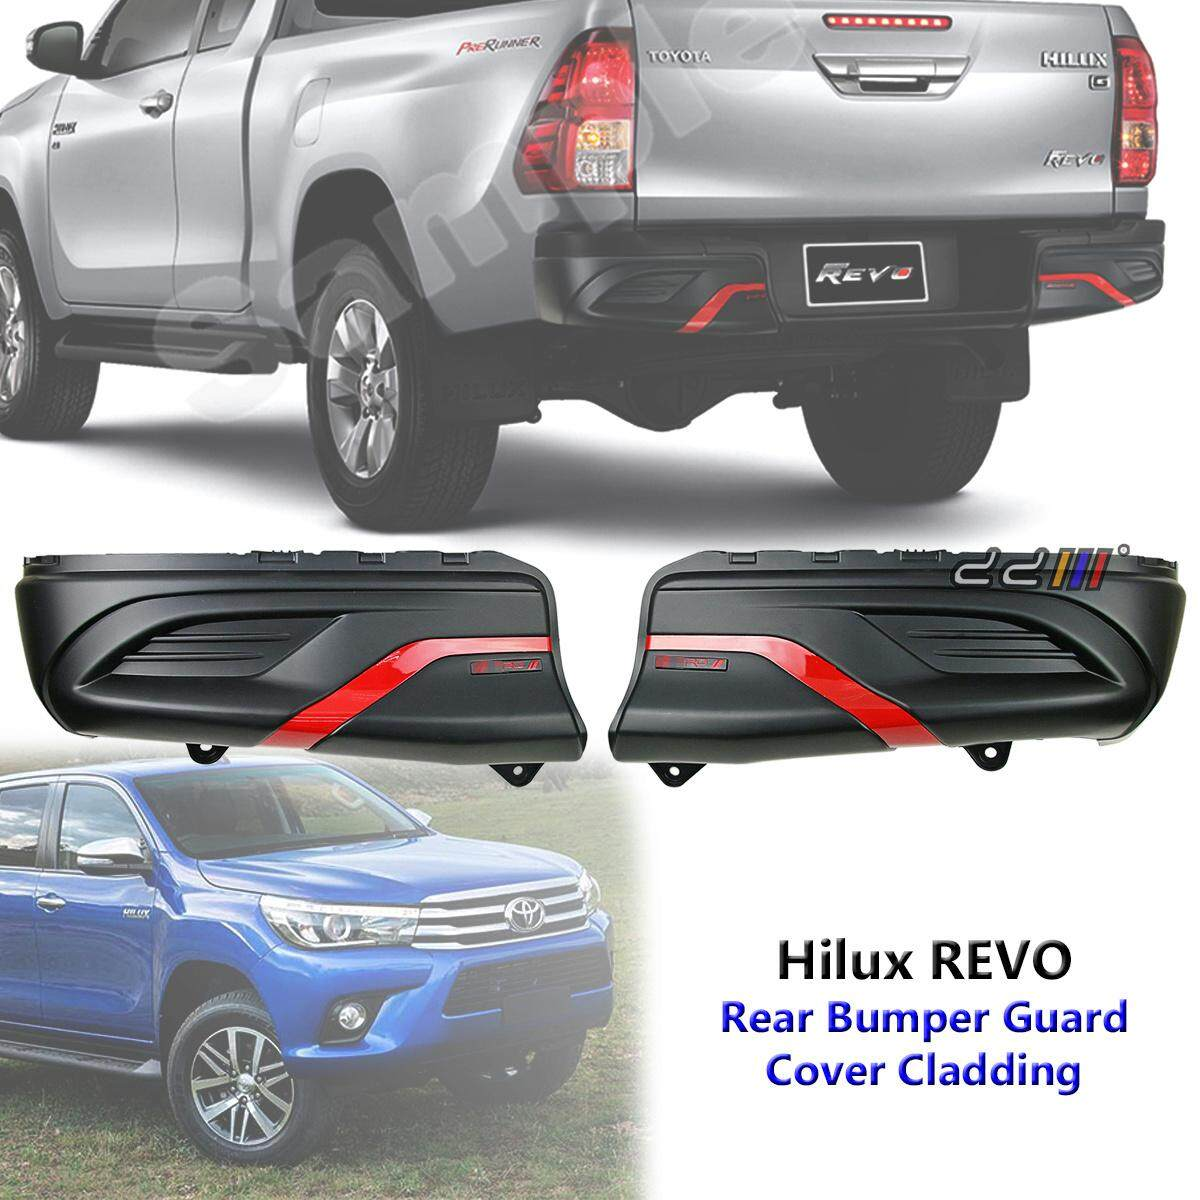 Rear Bumper Guard Cover Cladding Trd Style For Toyota Hilux Revo 2015 2016 2017 By Carpartsmy..